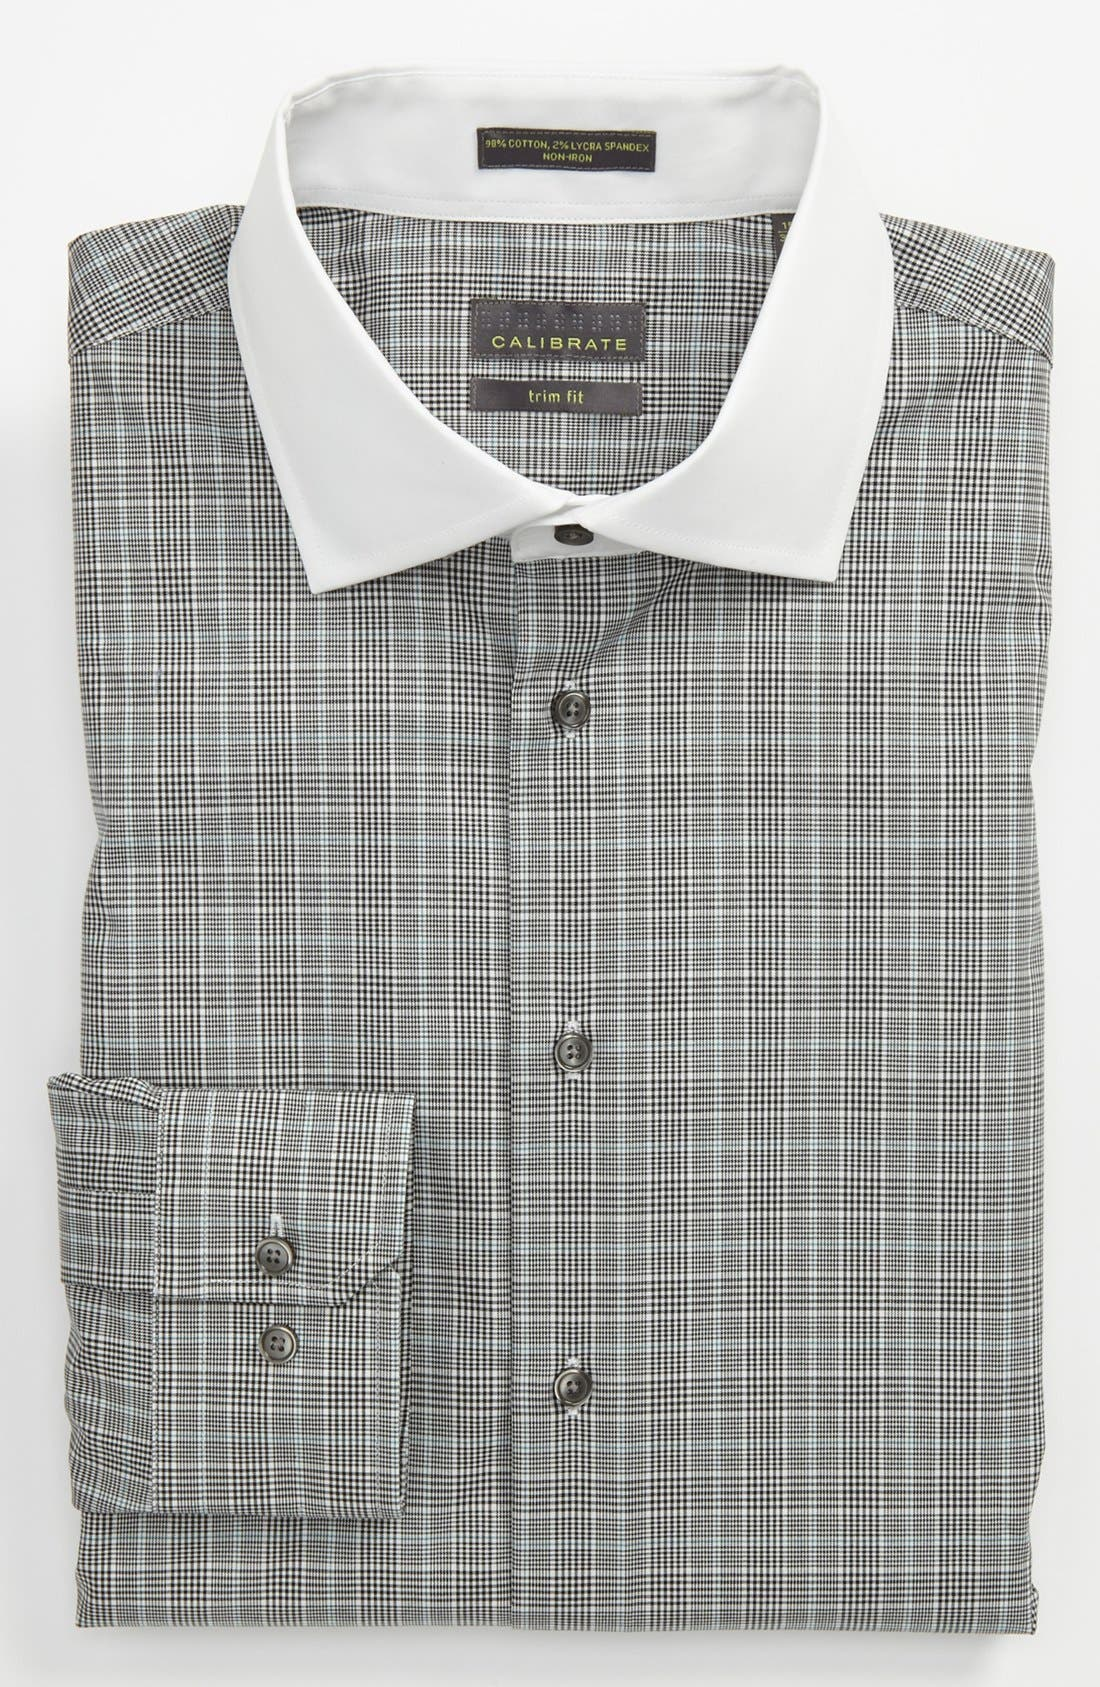 Alternate Image 1 Selected - Calibrate Trim Fit Non-Iron Dress Shirt